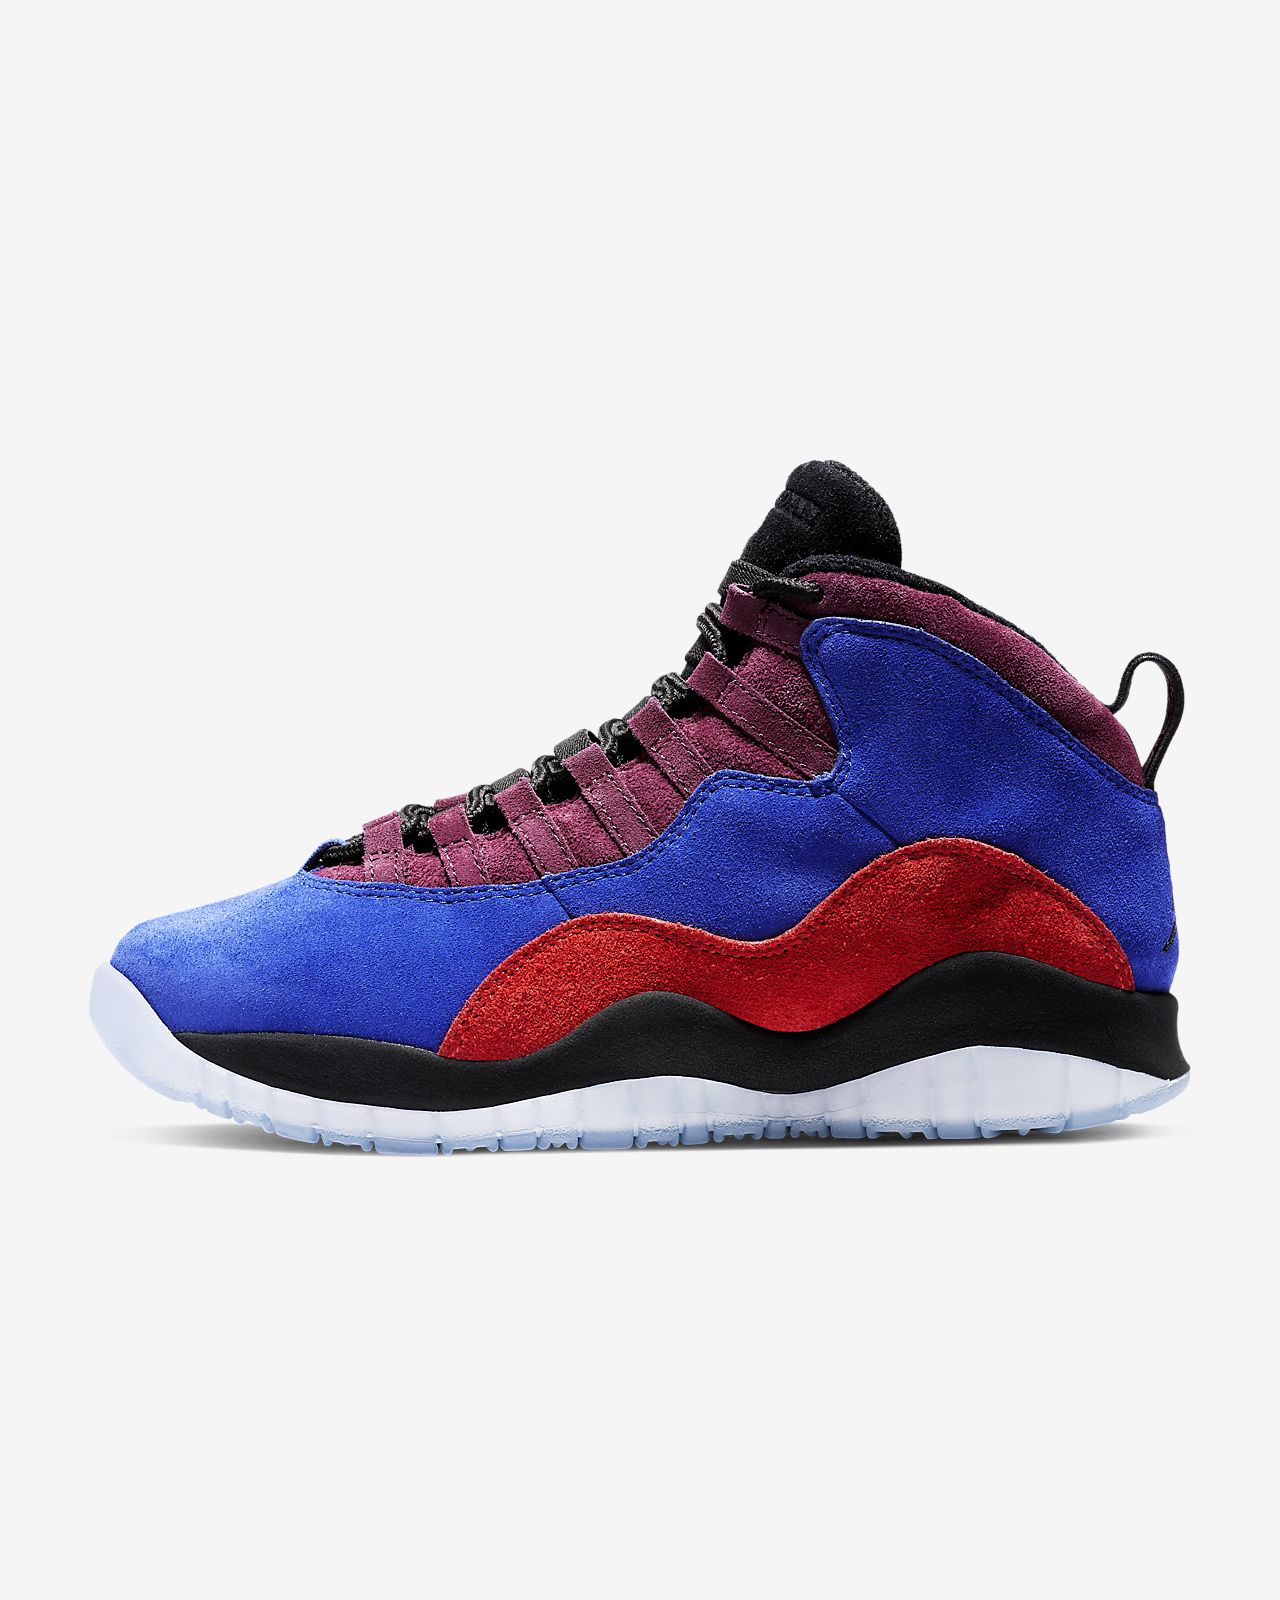 info for 89448 e5155 Air Jordan 10 Retro Women's Shoe